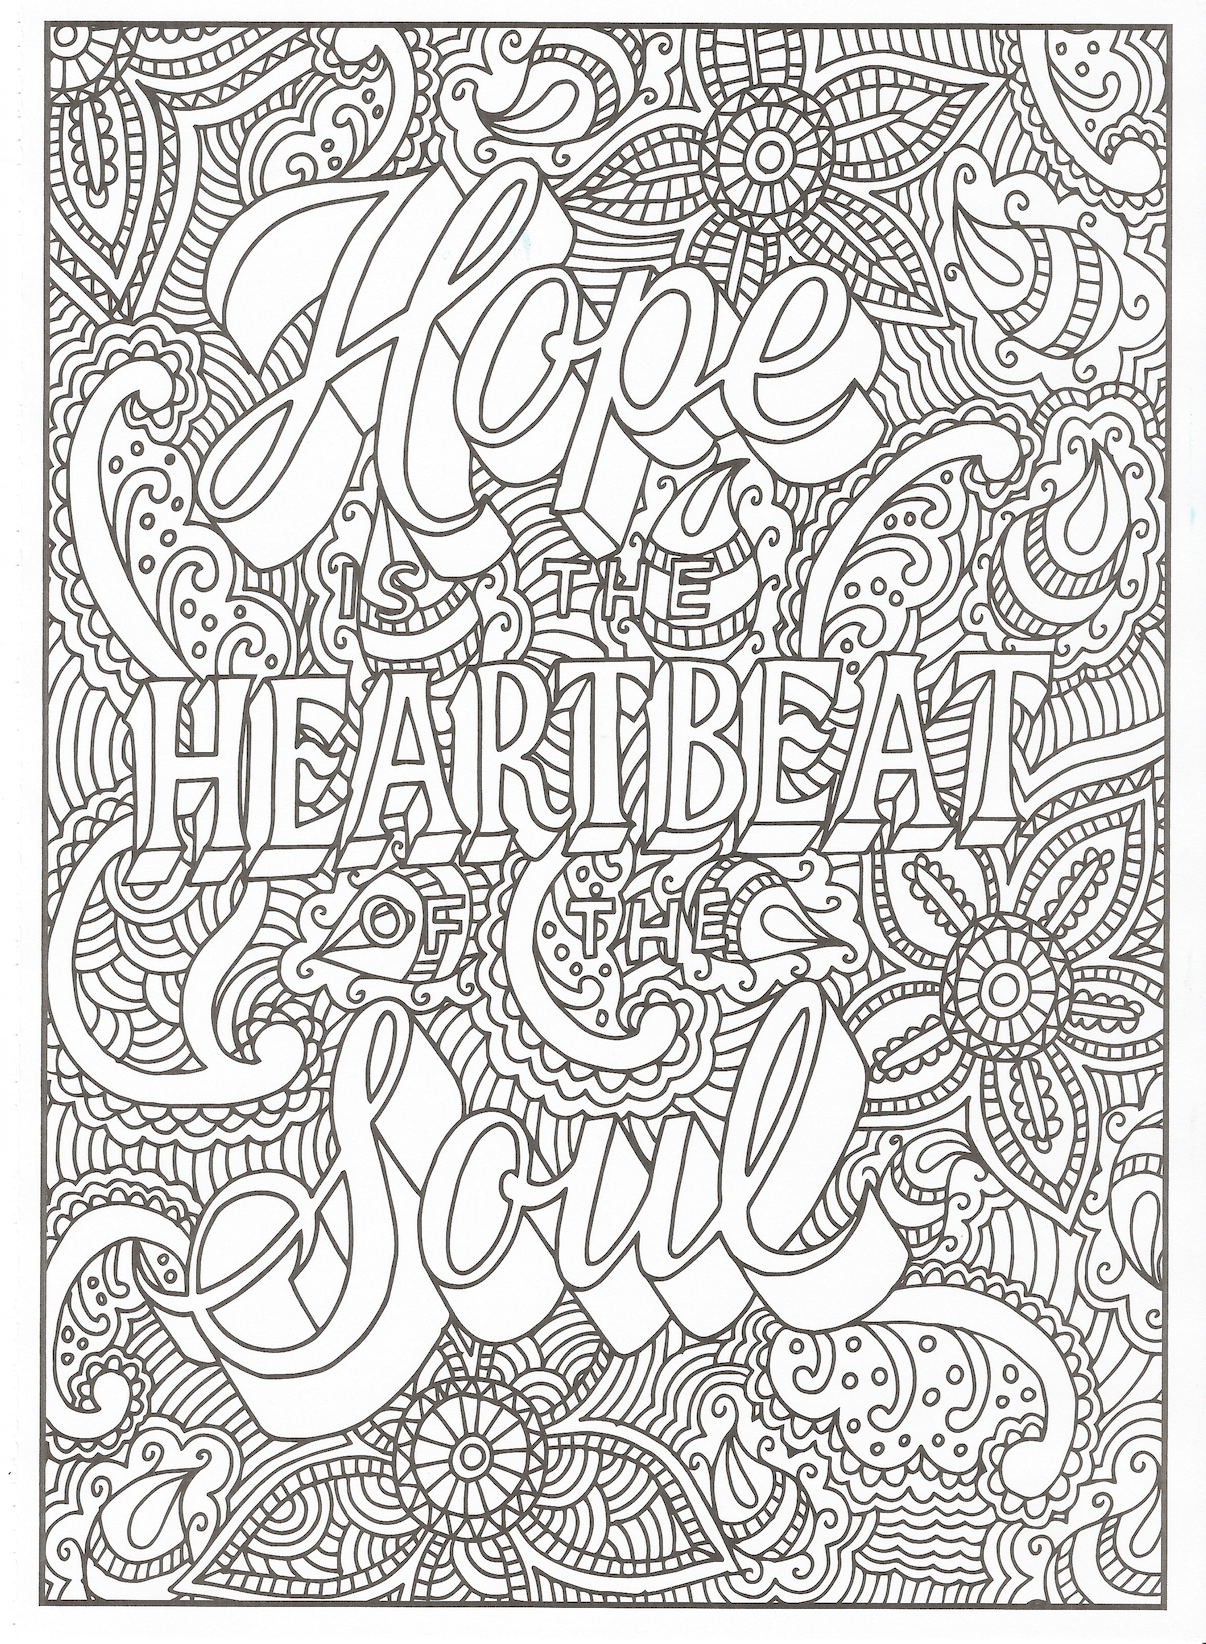 Timeless Creations Creative Quotes Coloring Page Hope Is Quote Coloring Pages Printable Coloring Book Free Coloring Pages